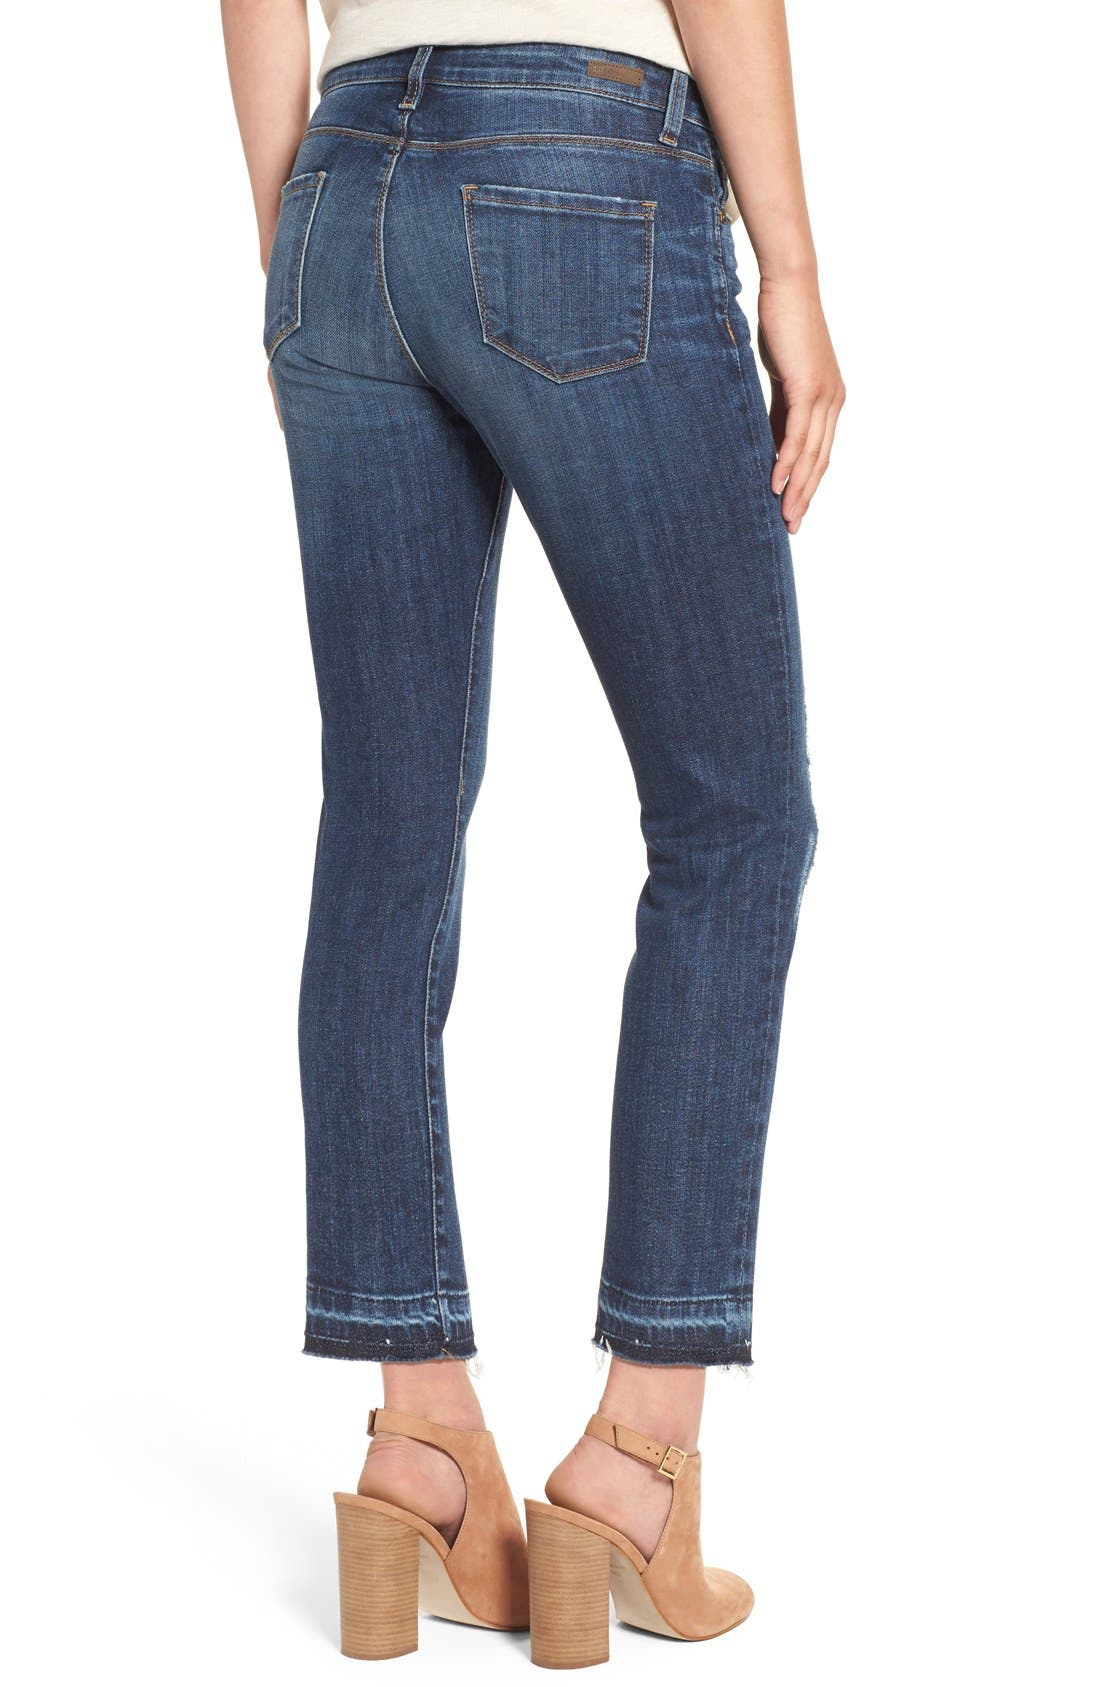 Alternate Image 3  - KUT from the Kloth 'Reese' Distressed Stretch Straight Leg Ankle Jeans (Capability) (Regular & Petite)